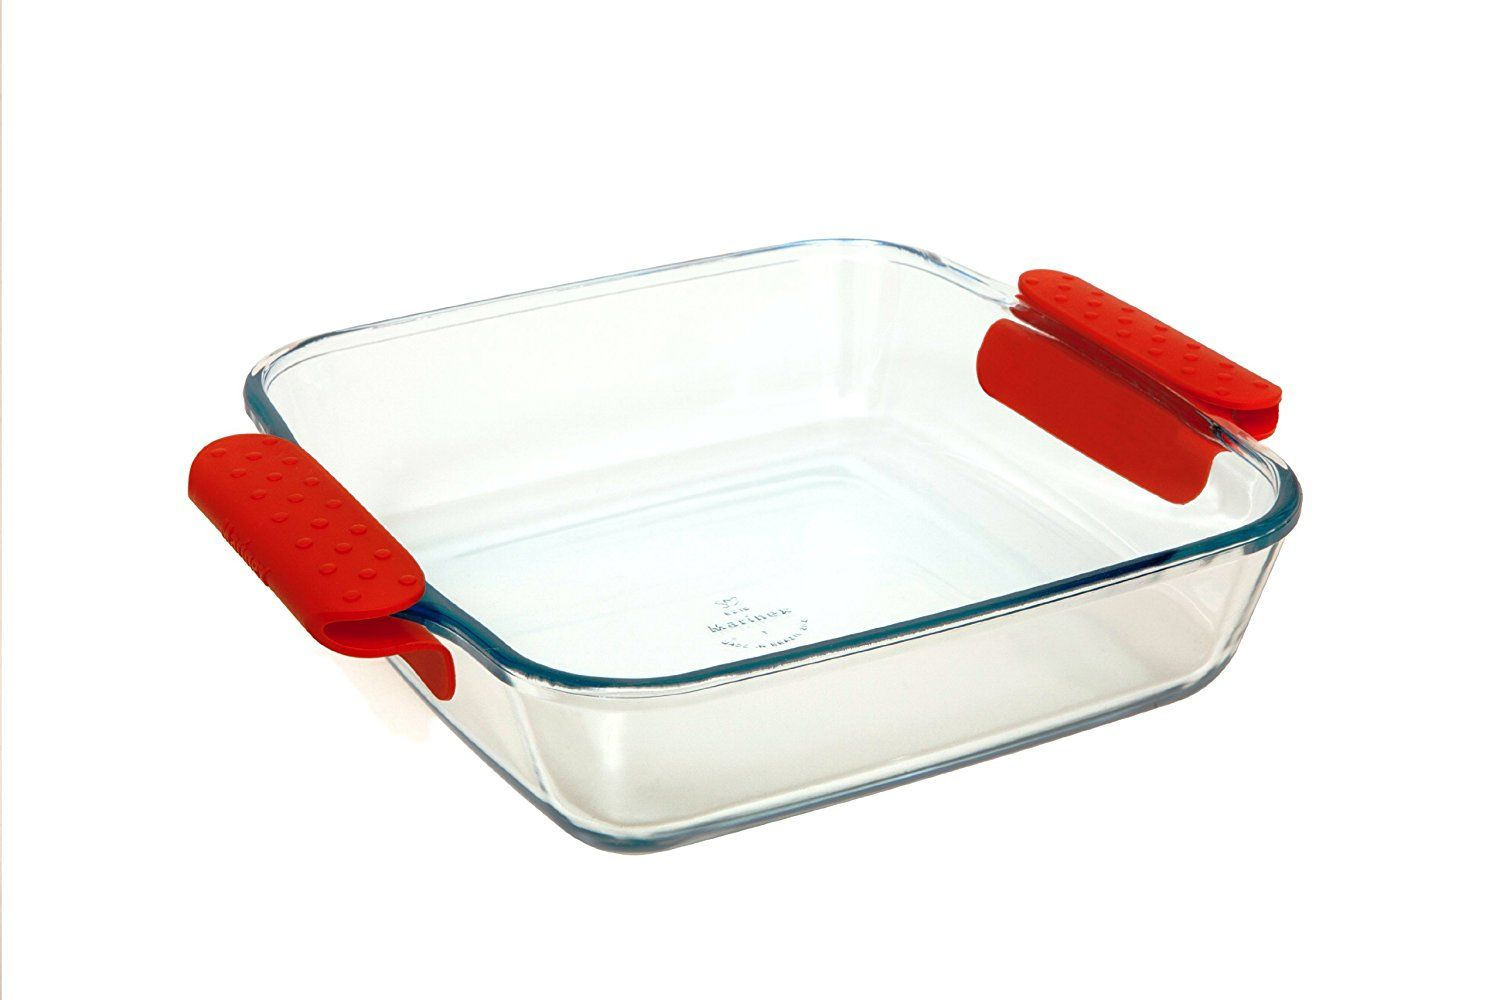 Marinex Prediletta Large Square Glass Roaster With Red Silicone Handles 4 Quart Startling Big Discounts Available Here Bakeware